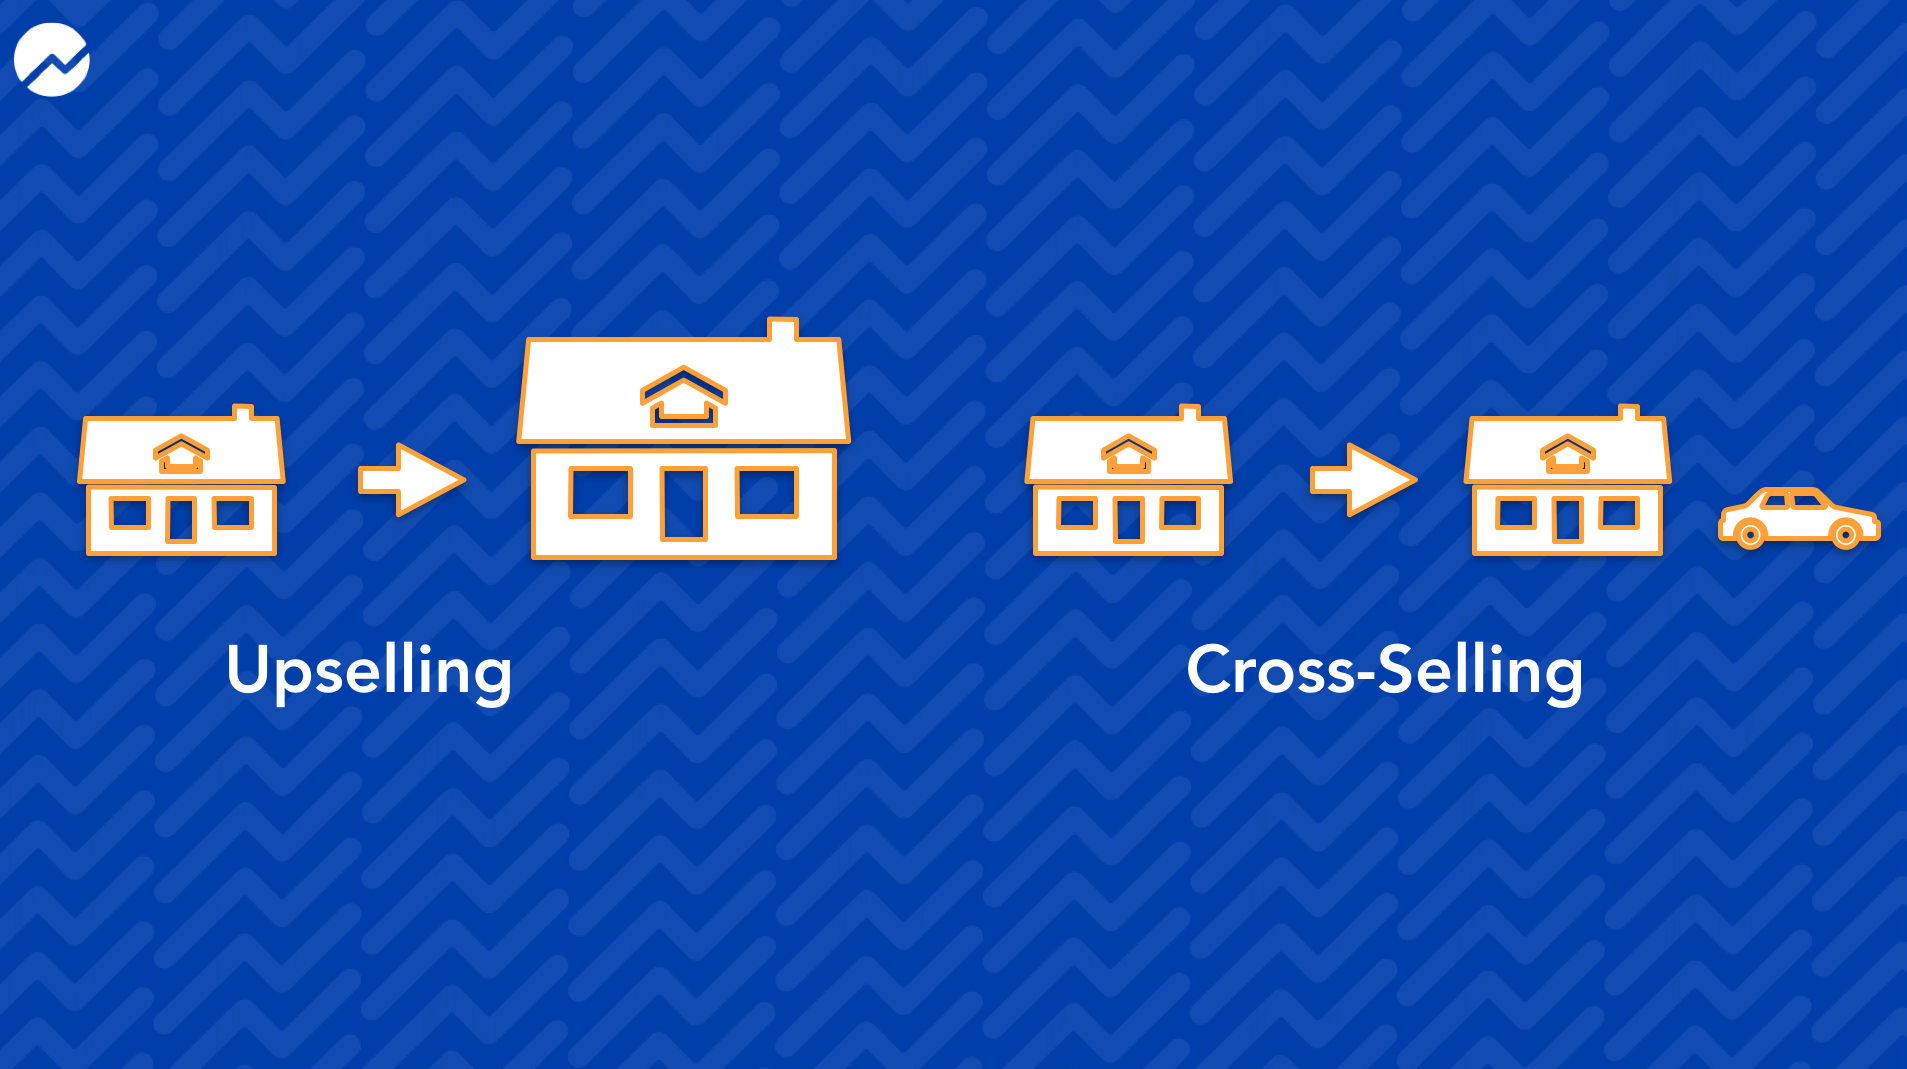 How to Upsell: 6 Strategies for Success